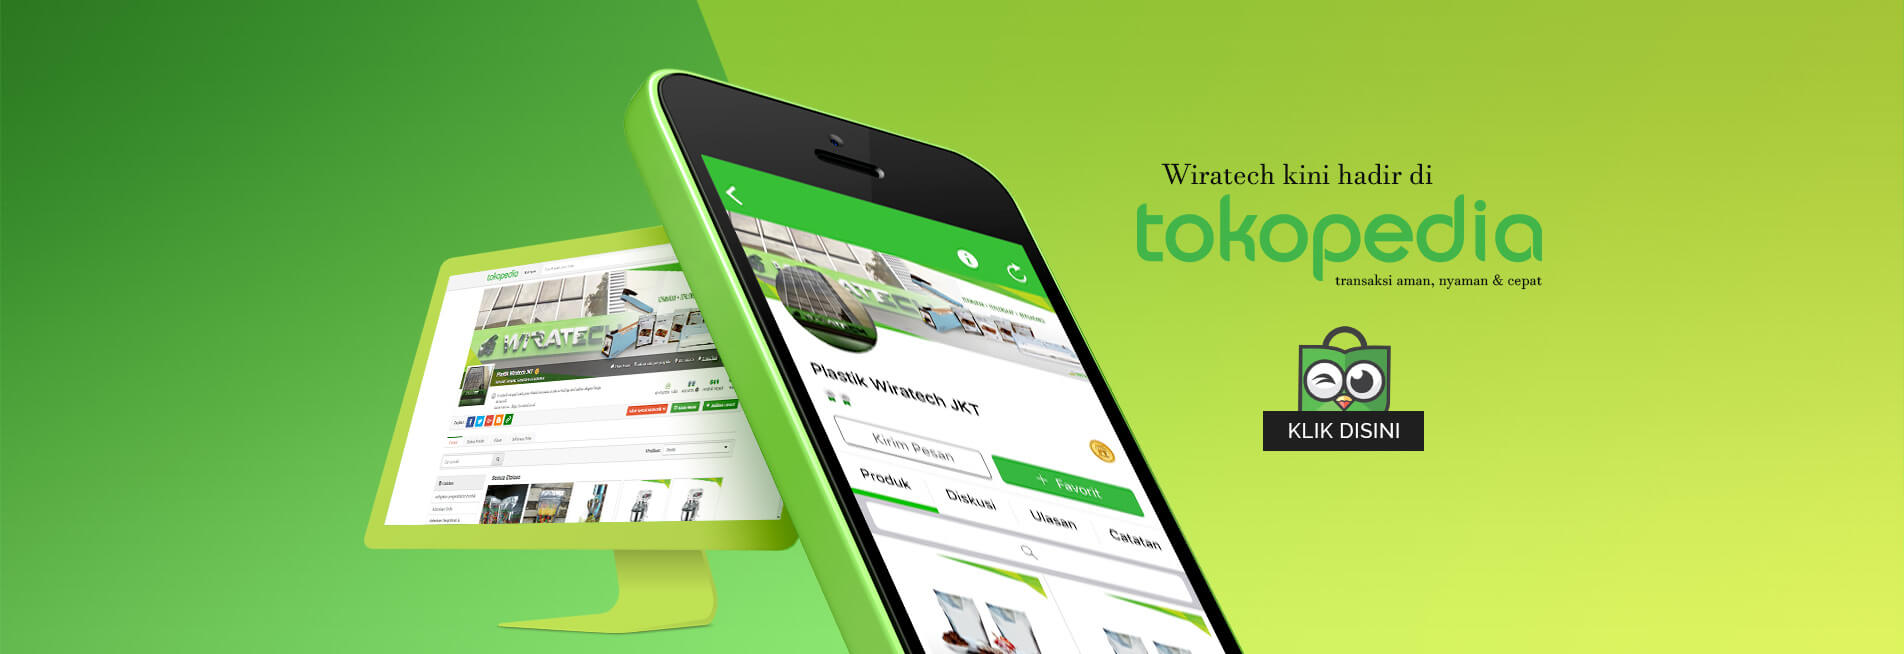 slider-wiratech-tokopedia Banner